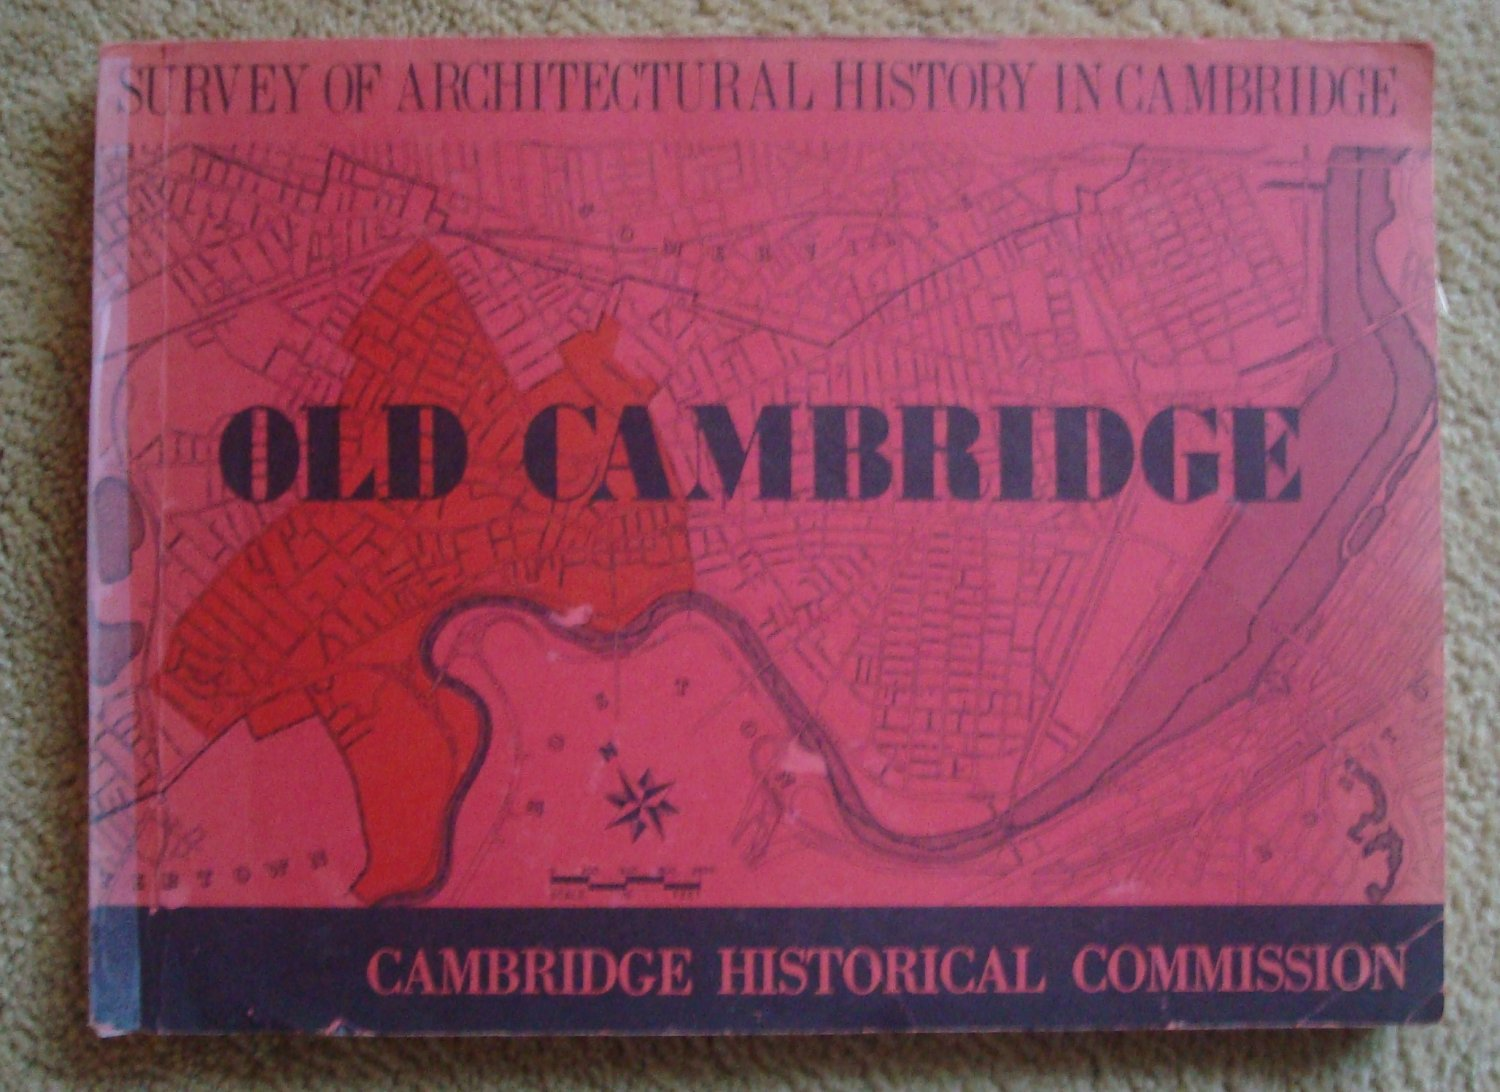 Old Cambridge: Survey of Architectural History in Cambridge